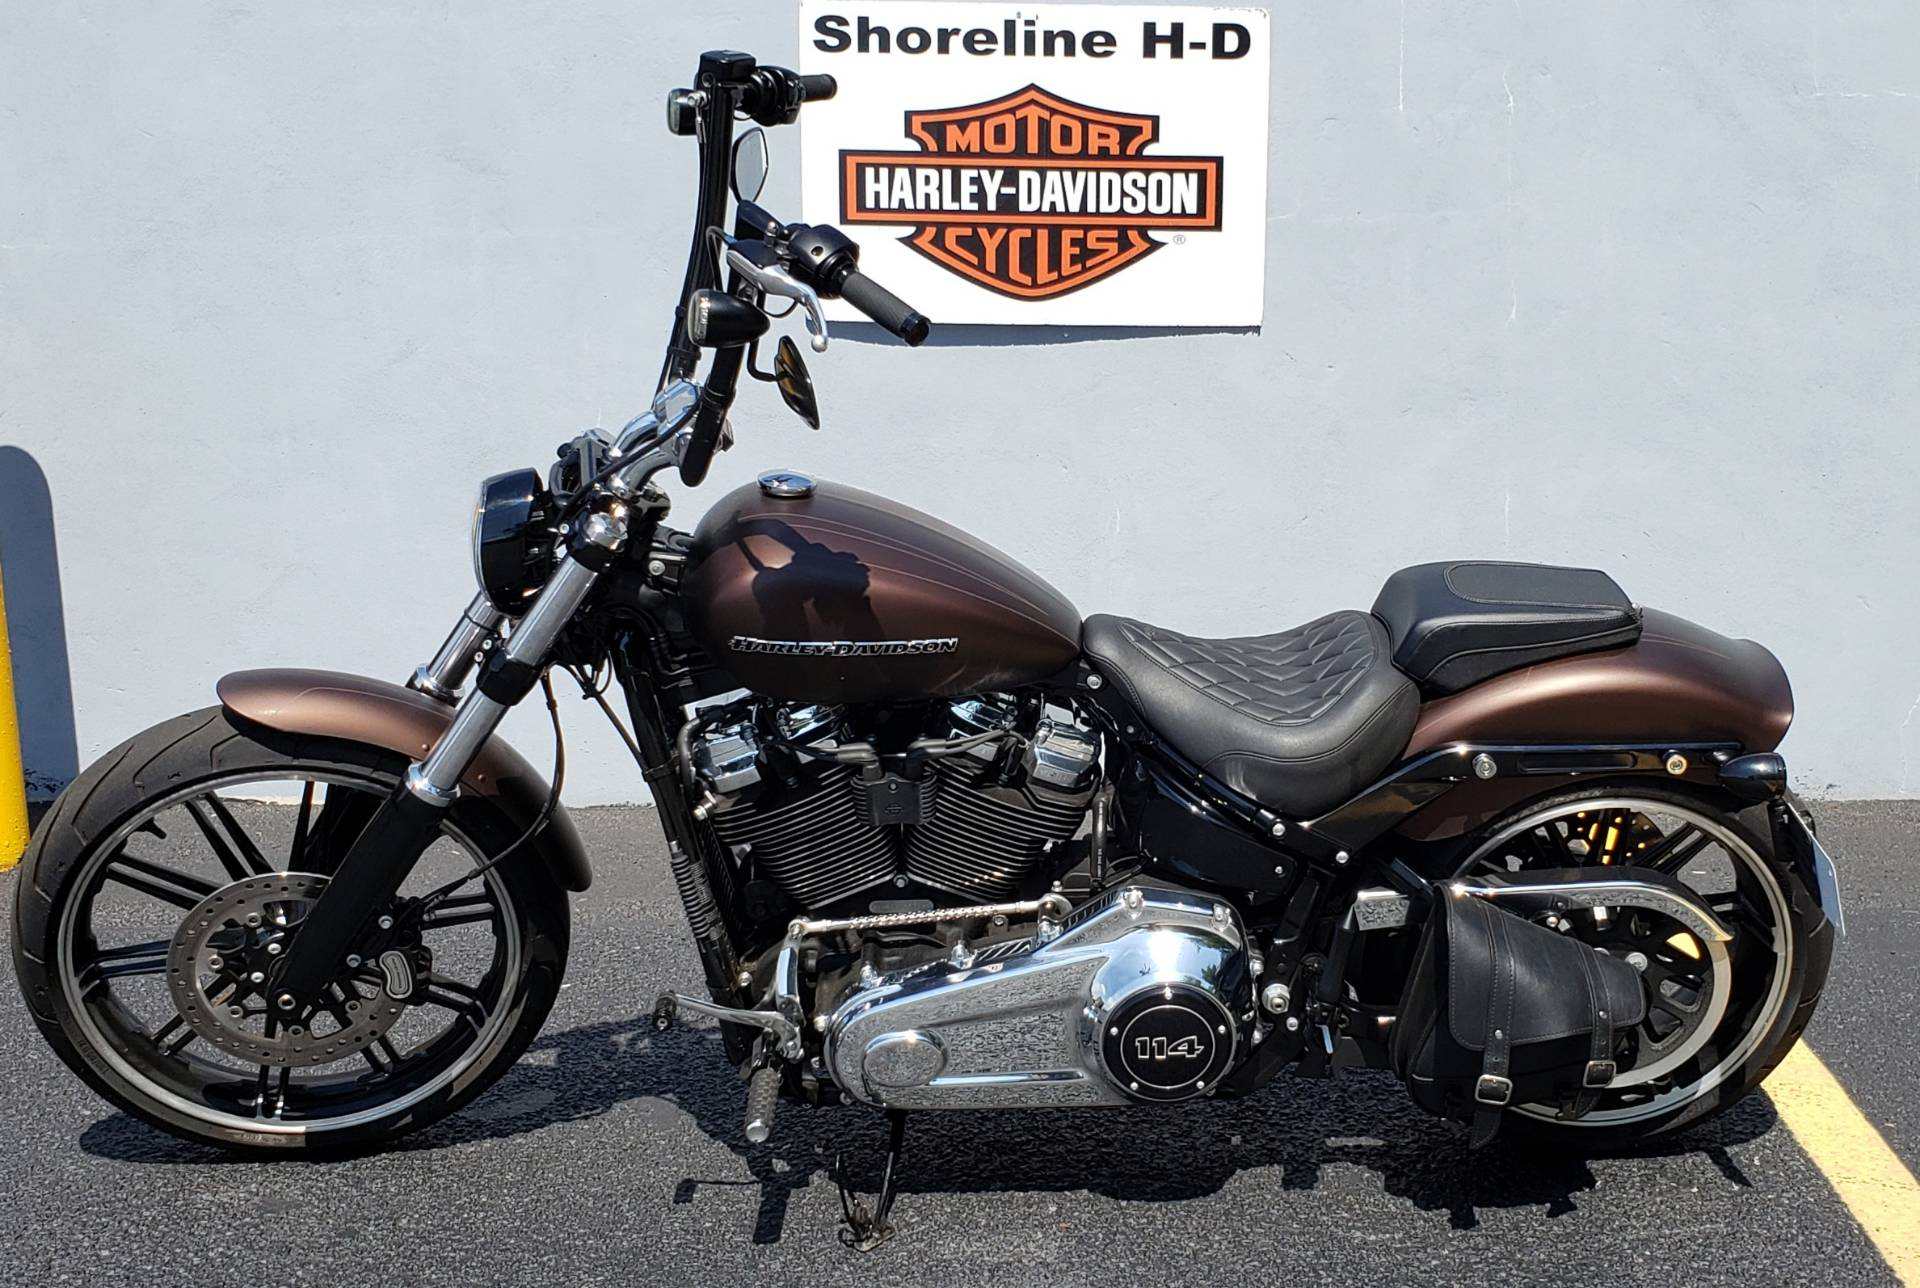 2019 Harley-Davidson Breakout 114 in West Long Branch, New Jersey - Photo 2